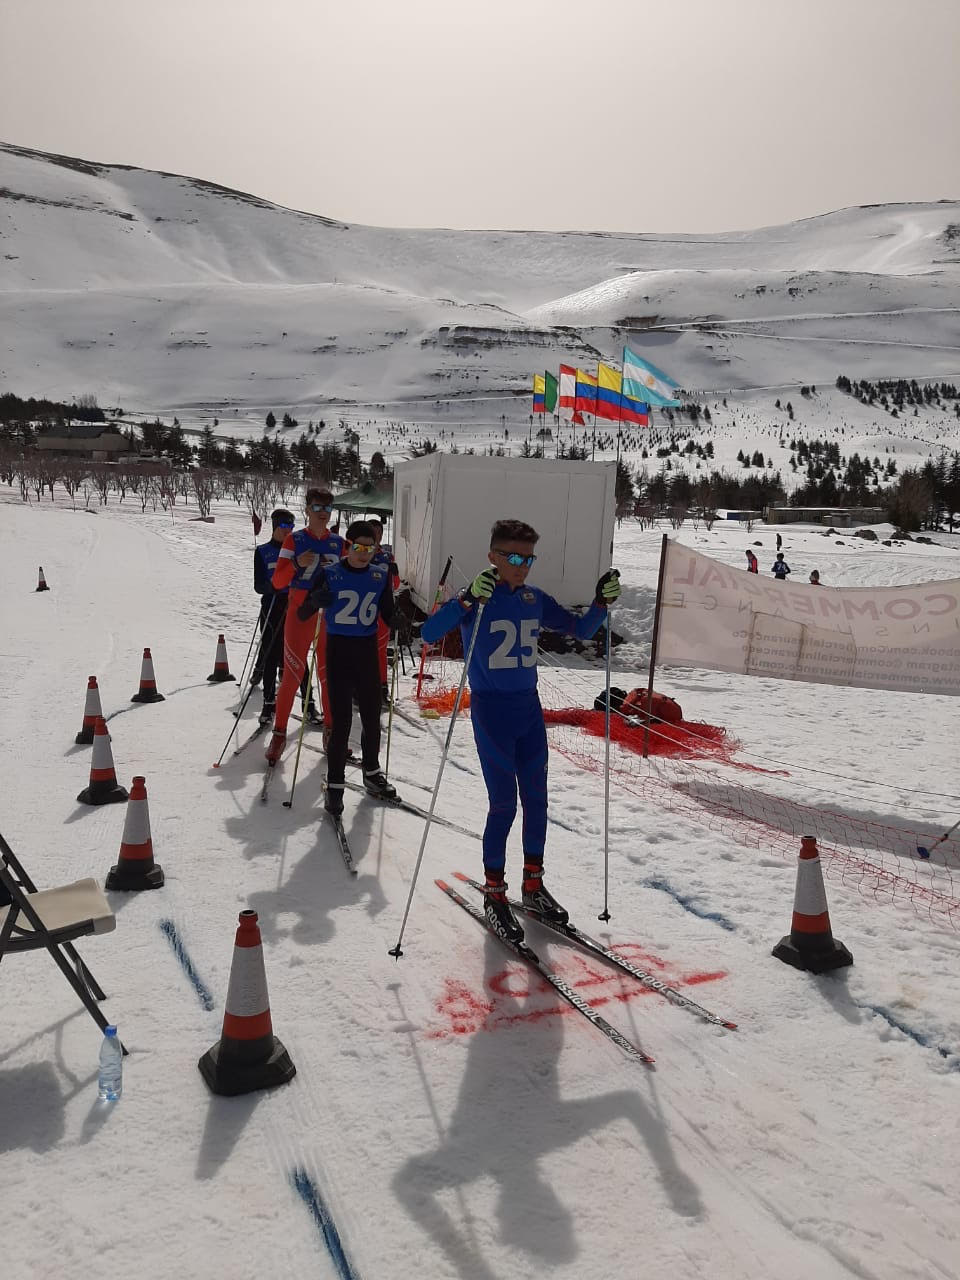 Lebanon has maintained its lead with 12 new medals on the second day of the international Small Evolving Ski (SES) Nations Cup.